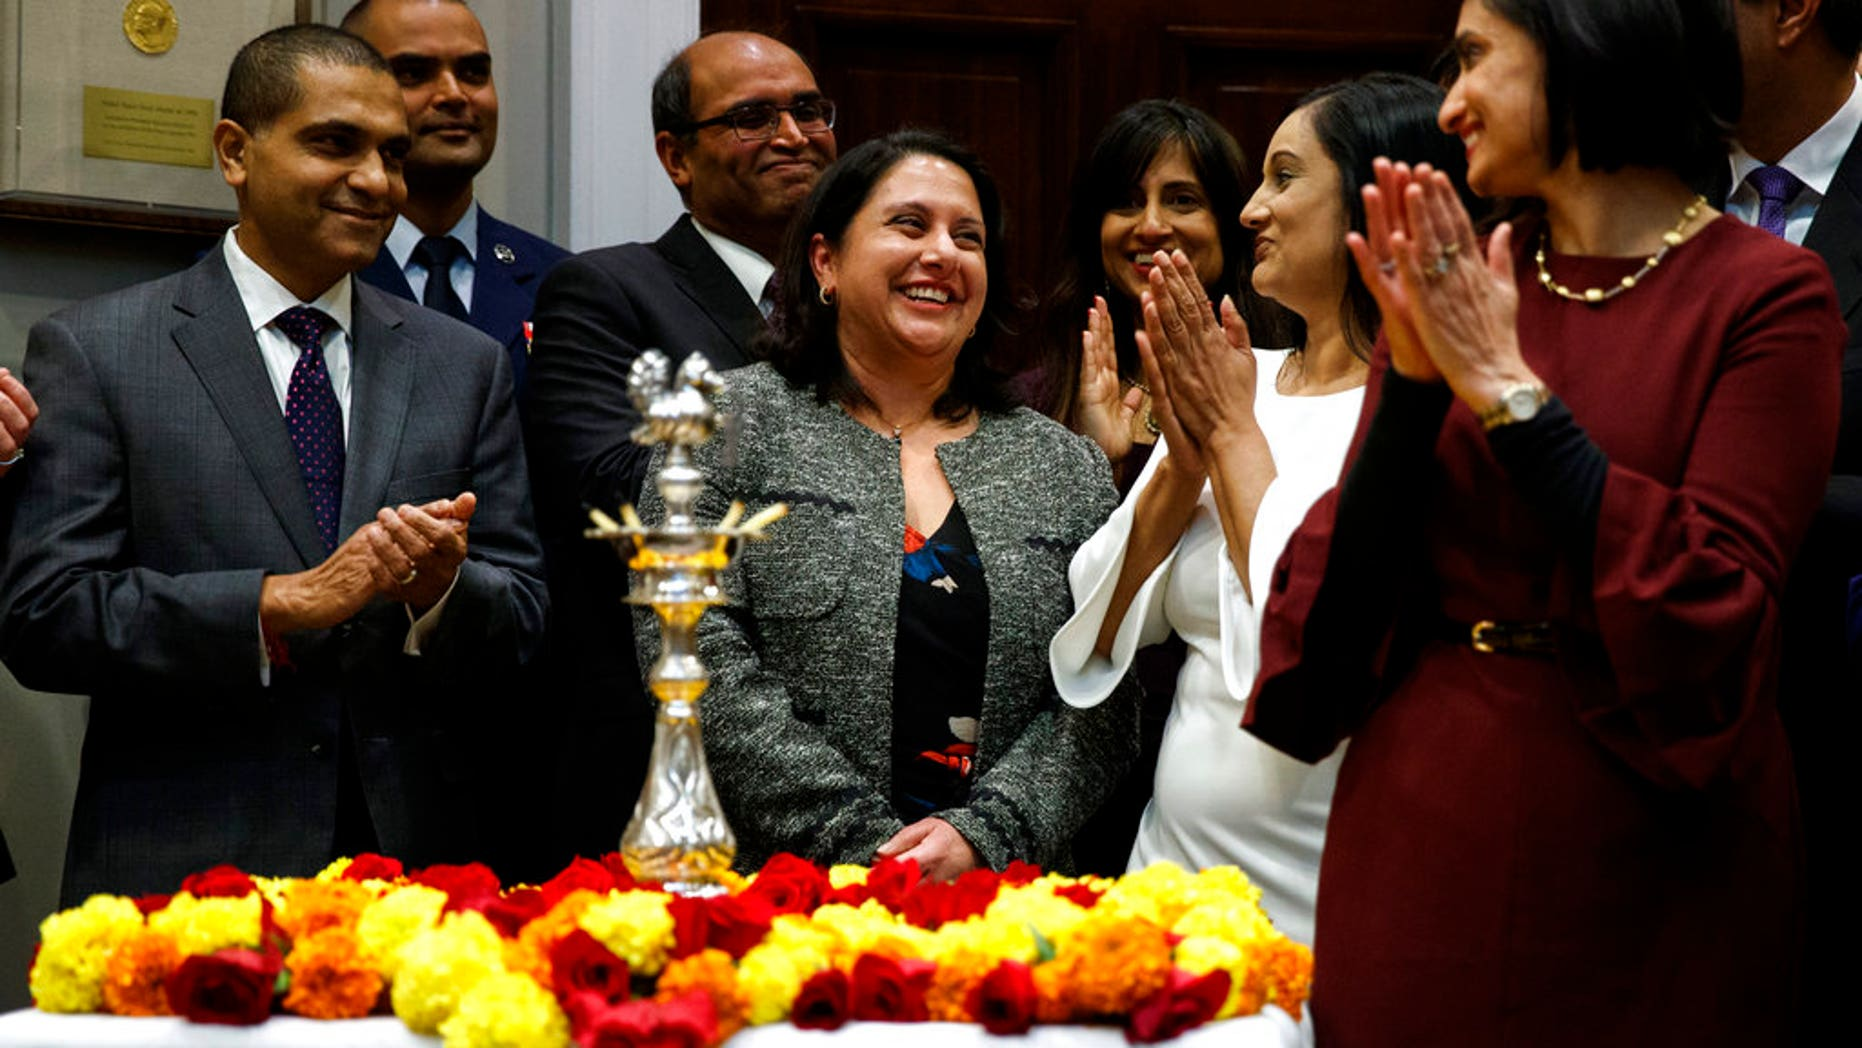 Neomi Rao, Administrator of the Office of Information and Regulatory Affairs, smiles as President Donald Trump announces his intention to nominate her to fill Brett Kavanaugh's seat on the U.S. Court of Appeals for the D.C. Circuit, during a Diwali ceremonial lighting of the Diya in the Roosevelt Room of the White House, Tuesday, Nov. 13, 2018, in Washington. (AP Photo/Evan Vucci)